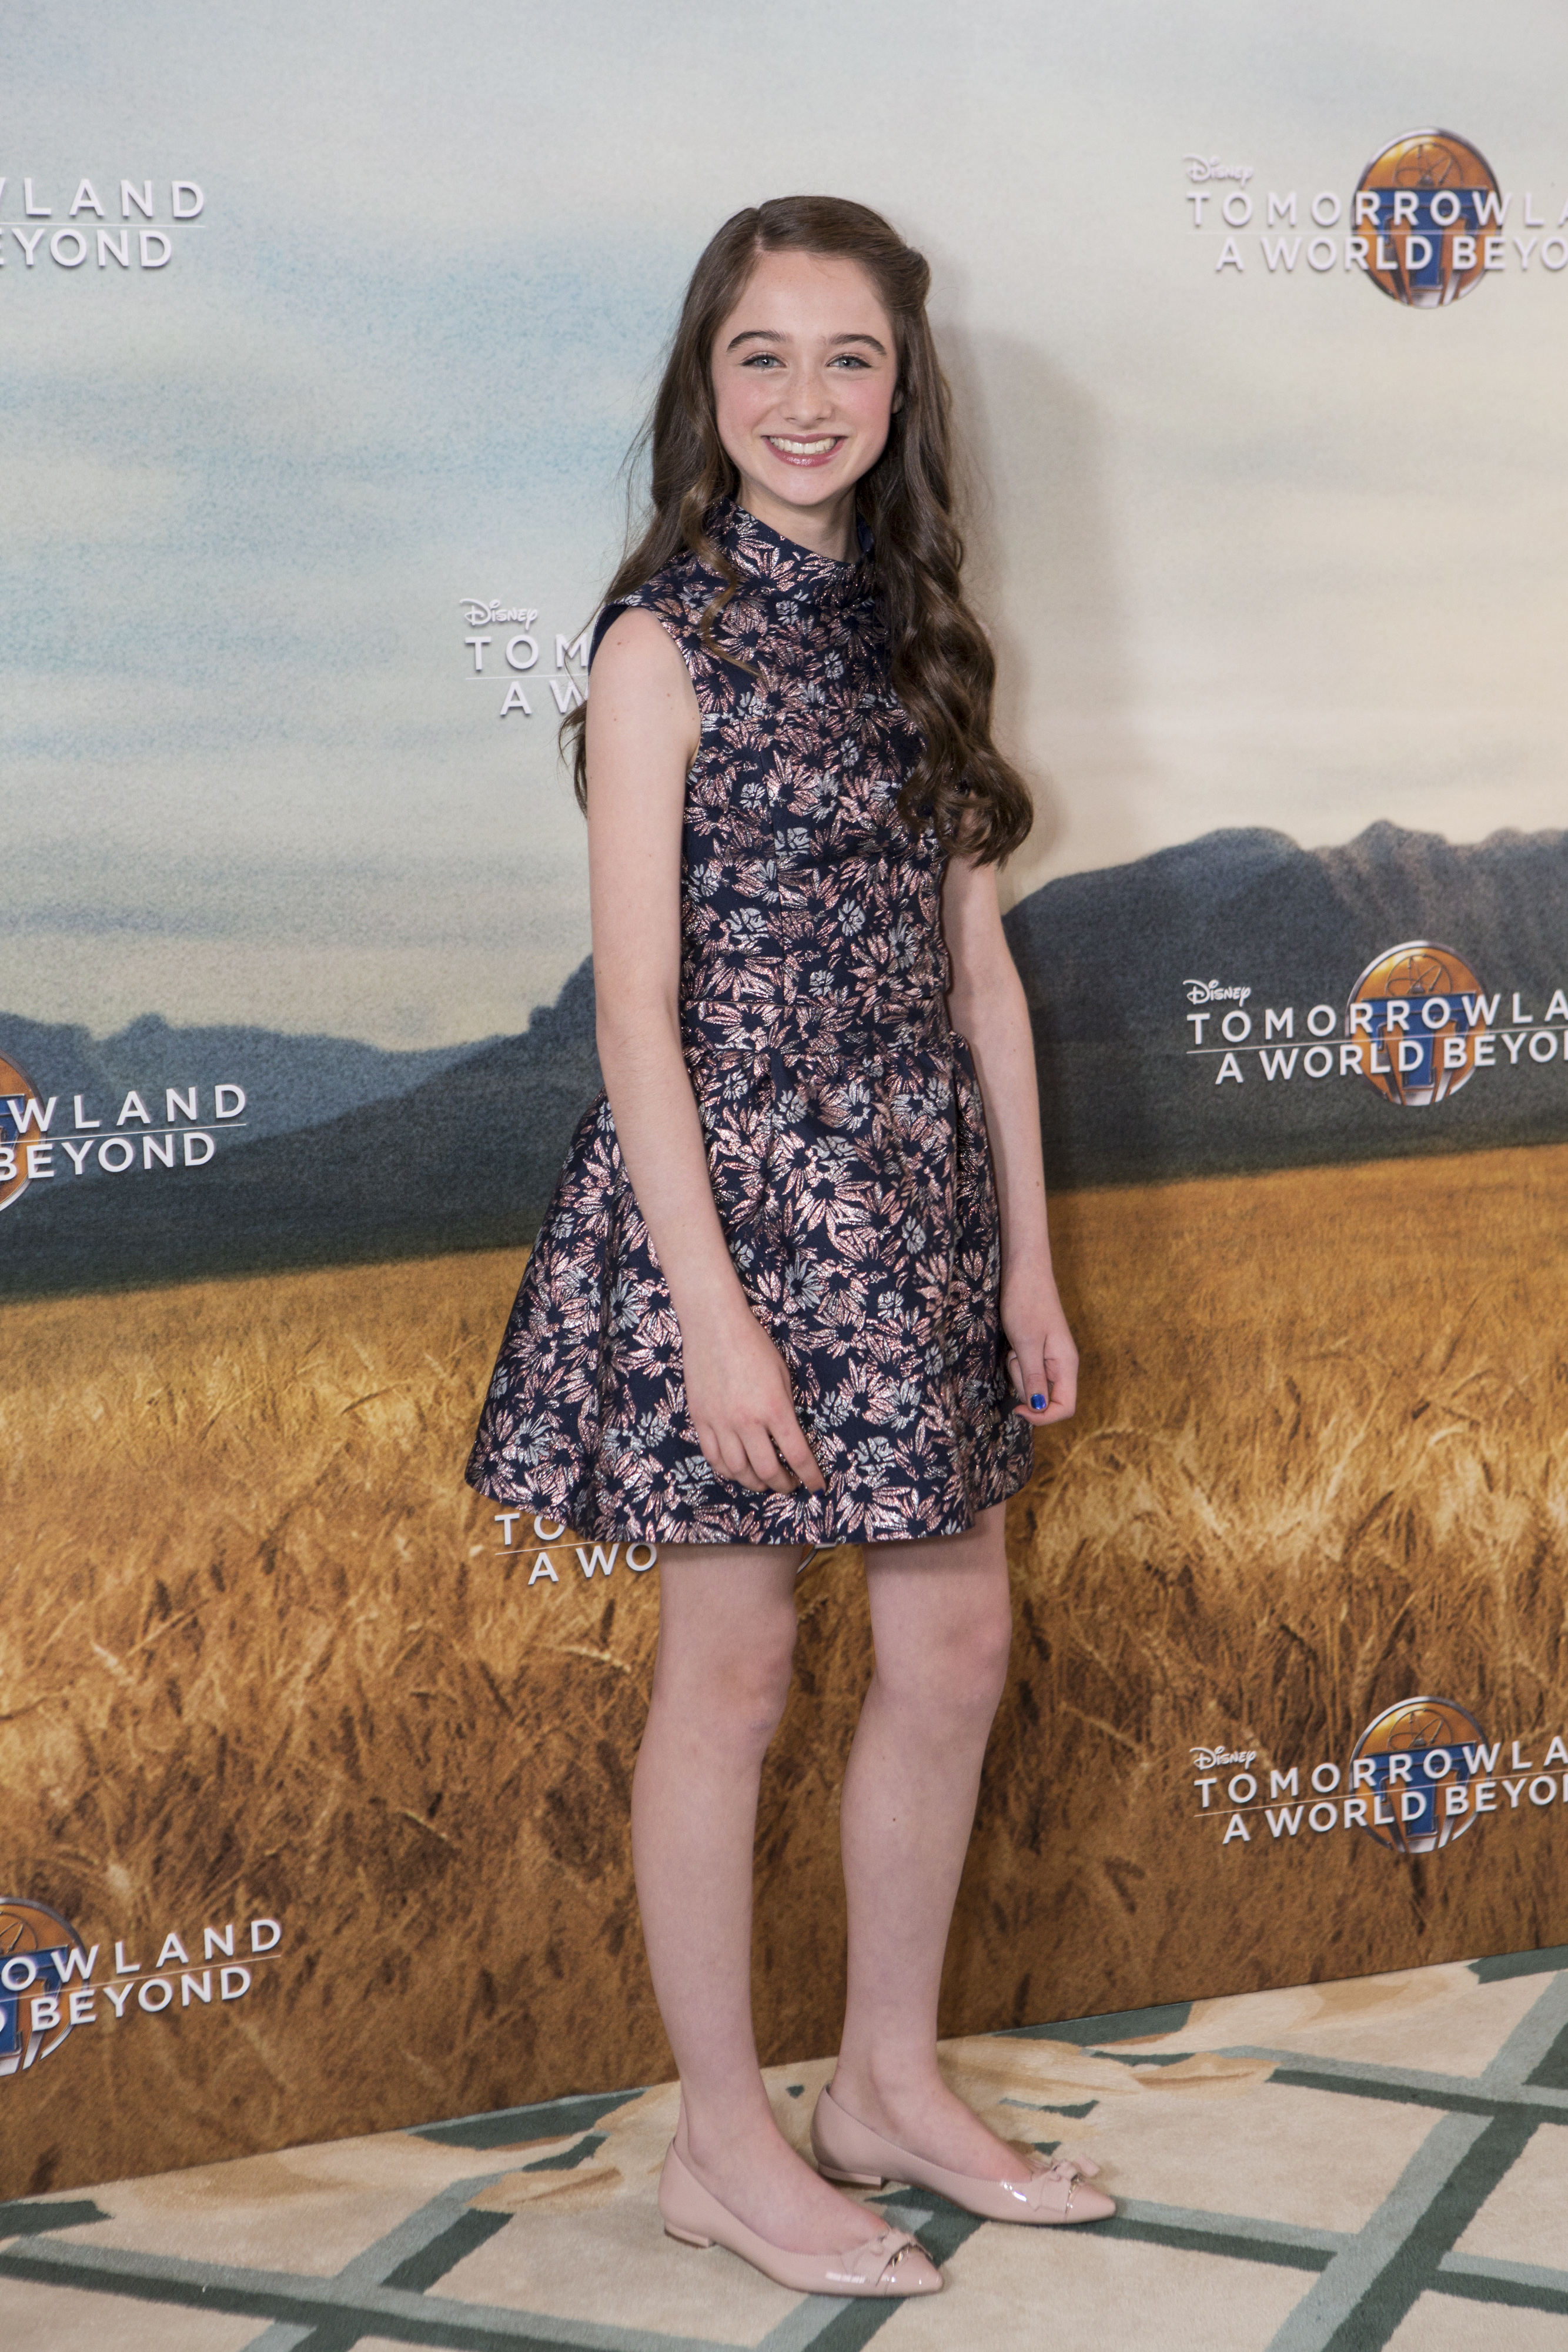 Actress Raffey Cassidy attends the European photo call of Disney?s ?Tomorrowland: A World Beyond? on May 18 in London, UK (Credit: James Gillham/ StingMedia.co.uk